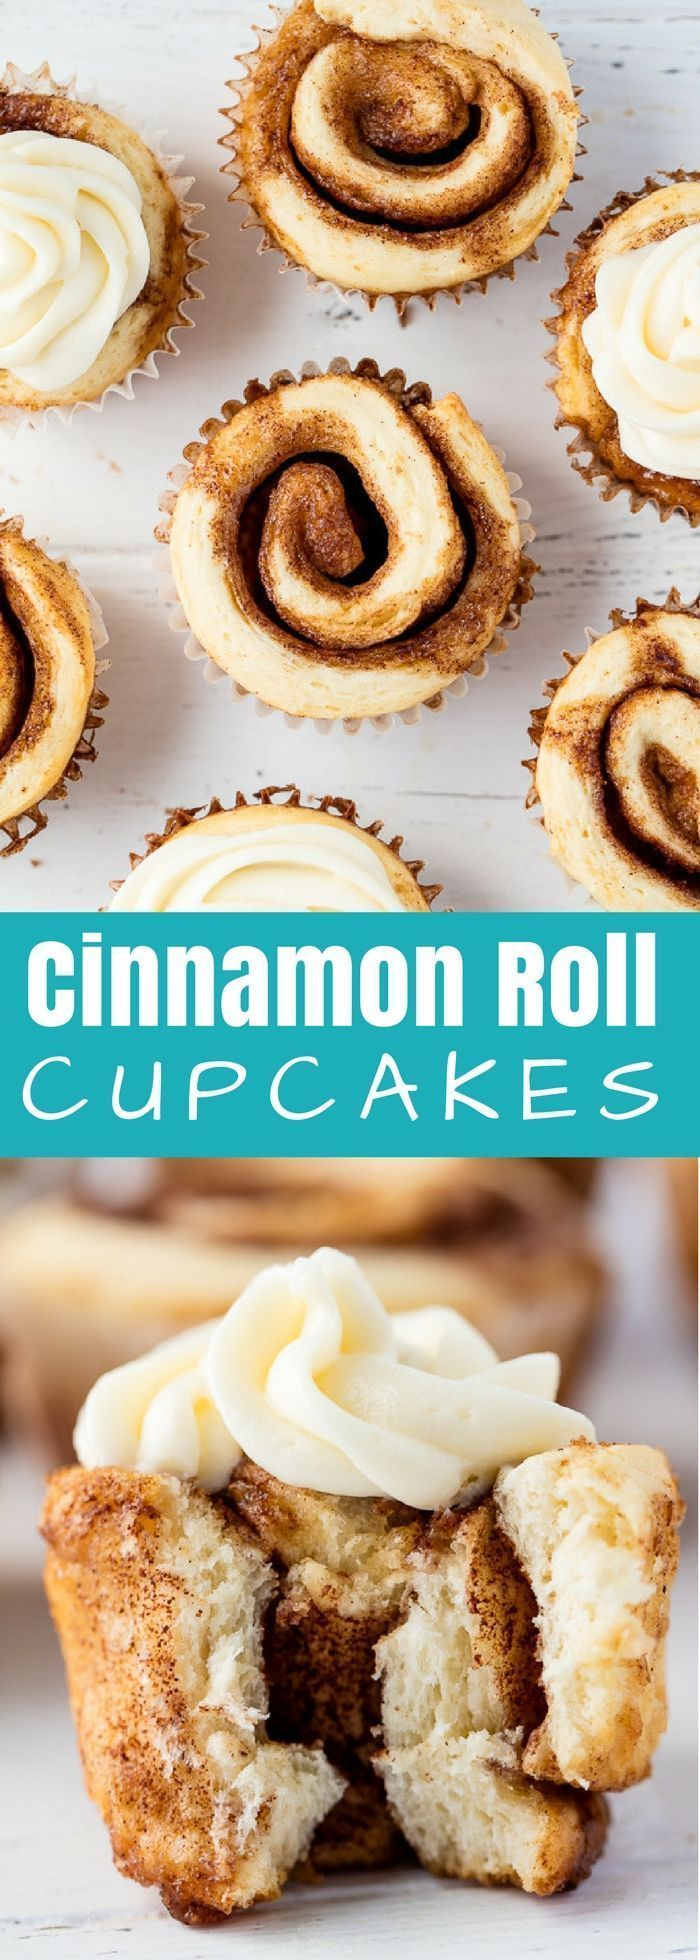 #Cinnamon #Roll #Cupcakes are a fun new way to serve up single sized individual portions. These are just way too much #fun! #dessert